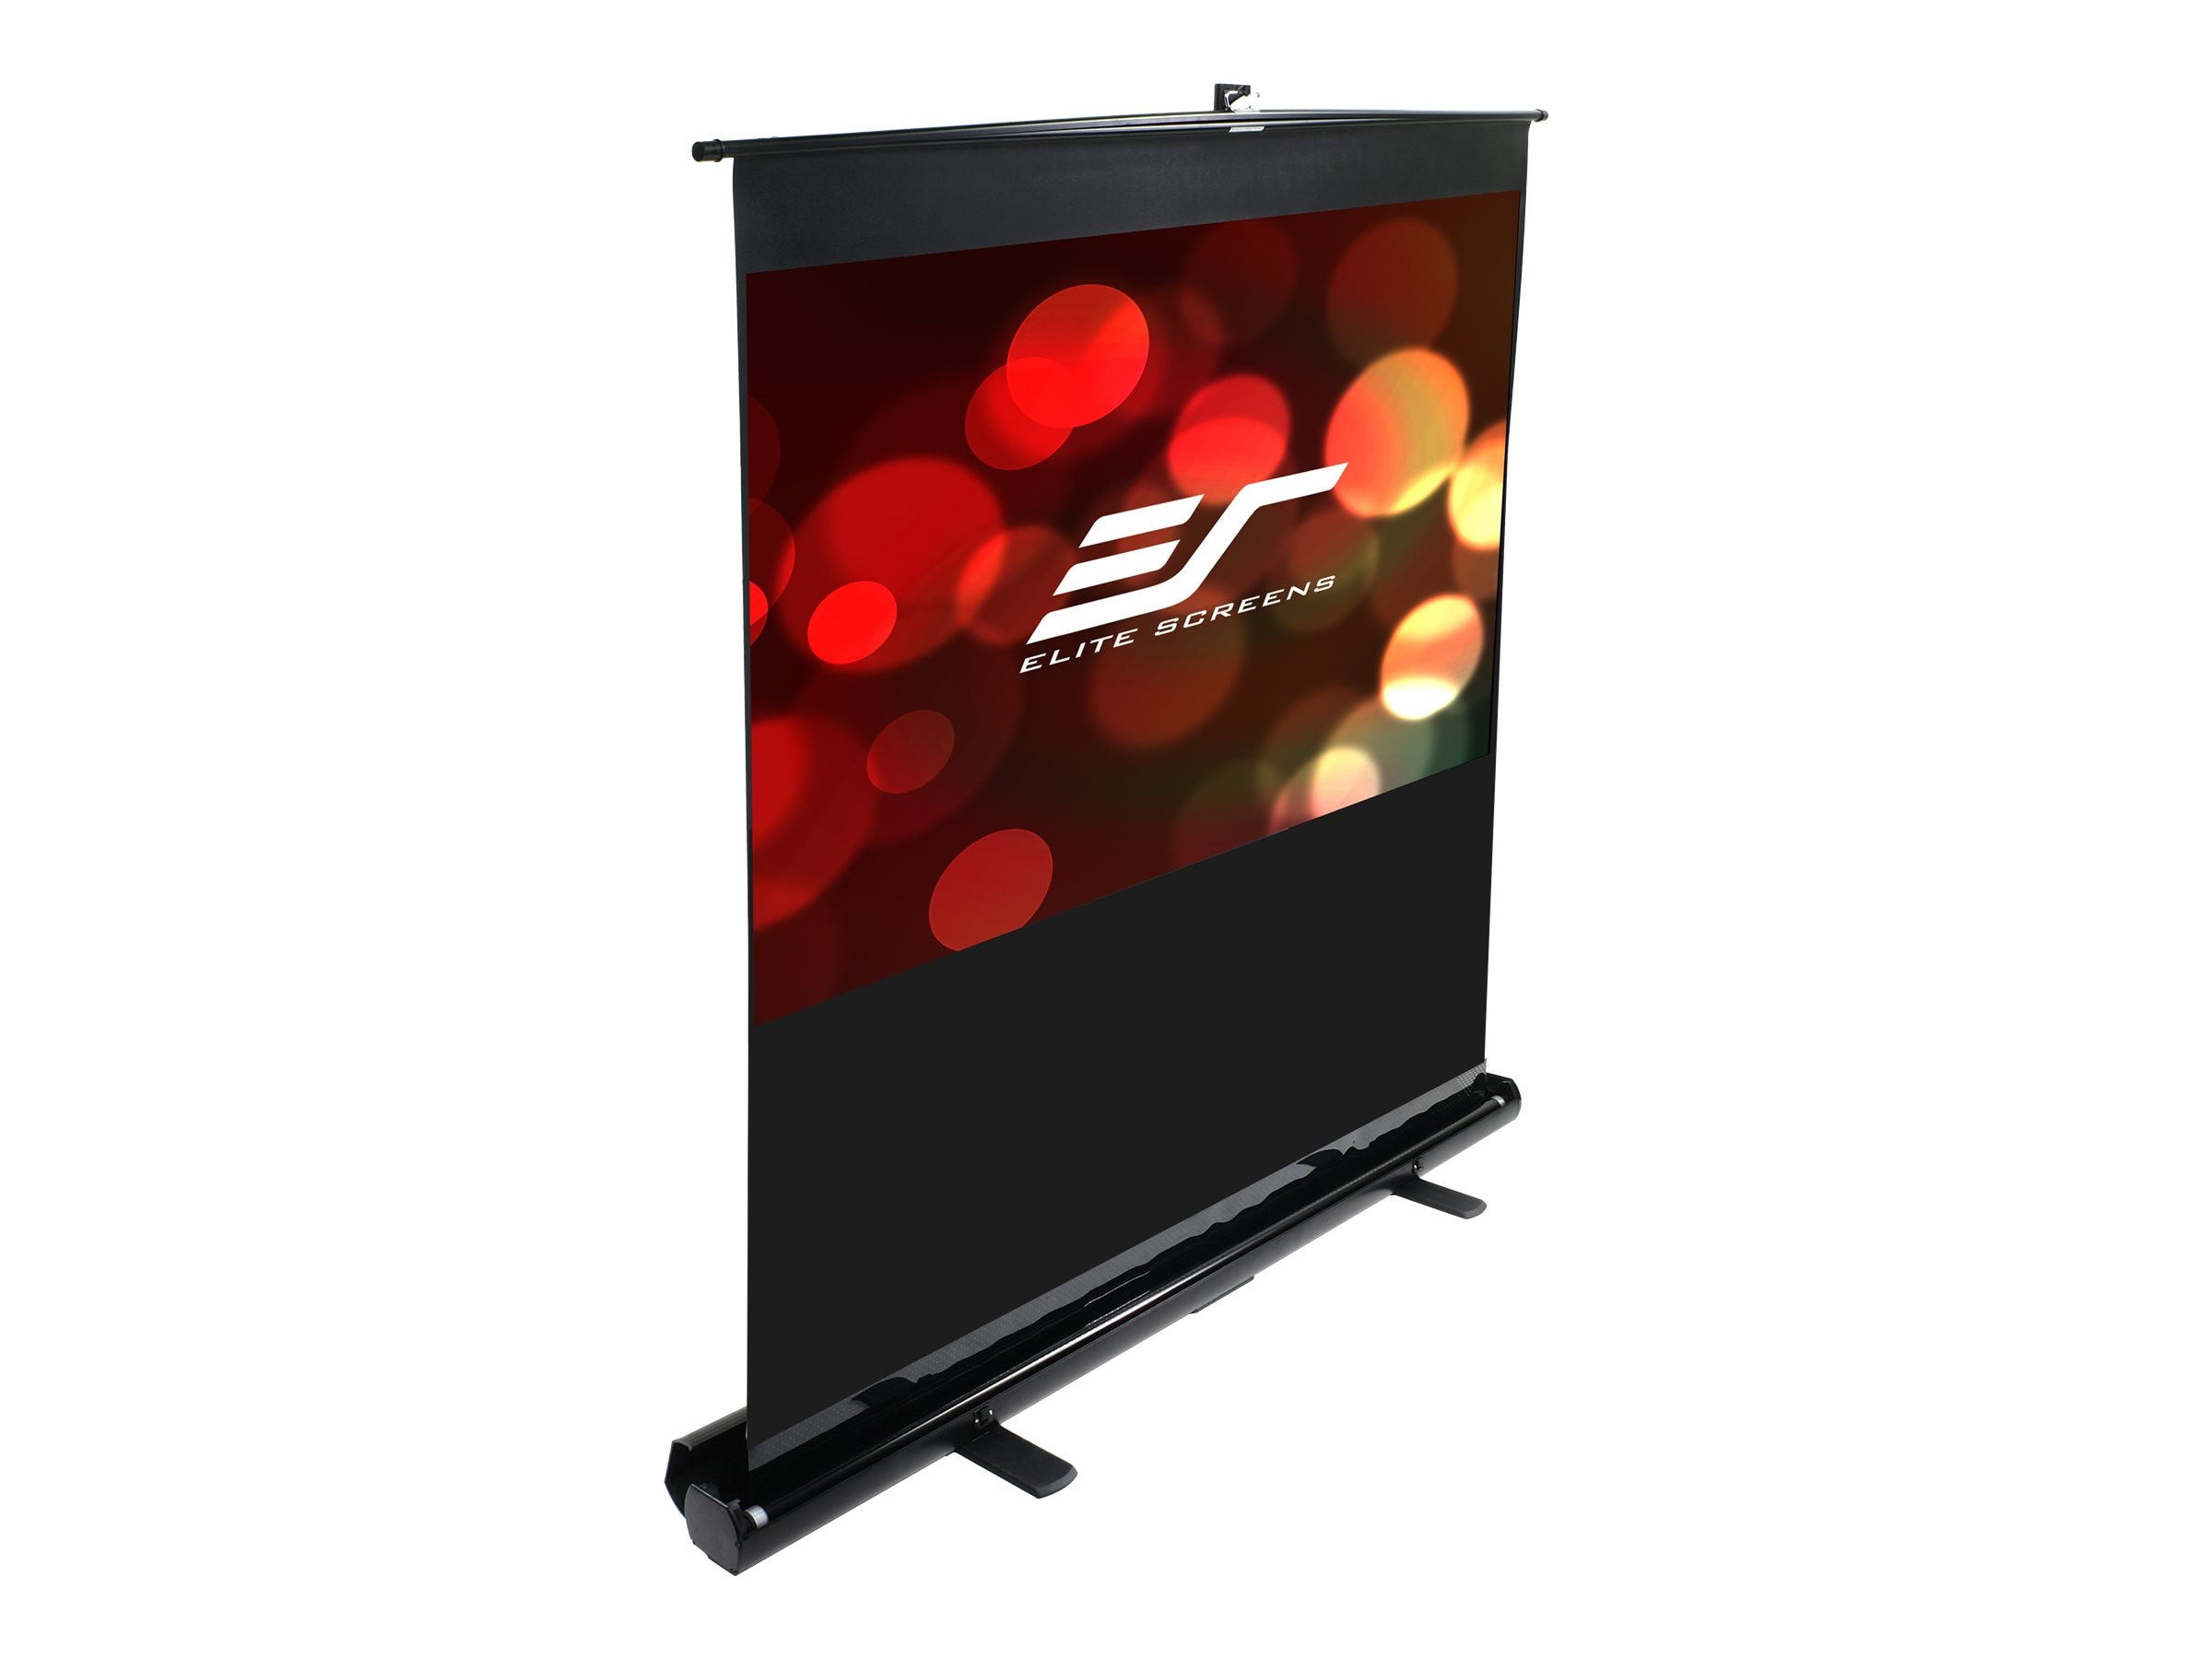 Elite ez-Cinema Series Projection Screen, Matte White, 16:9, 49 x 87in